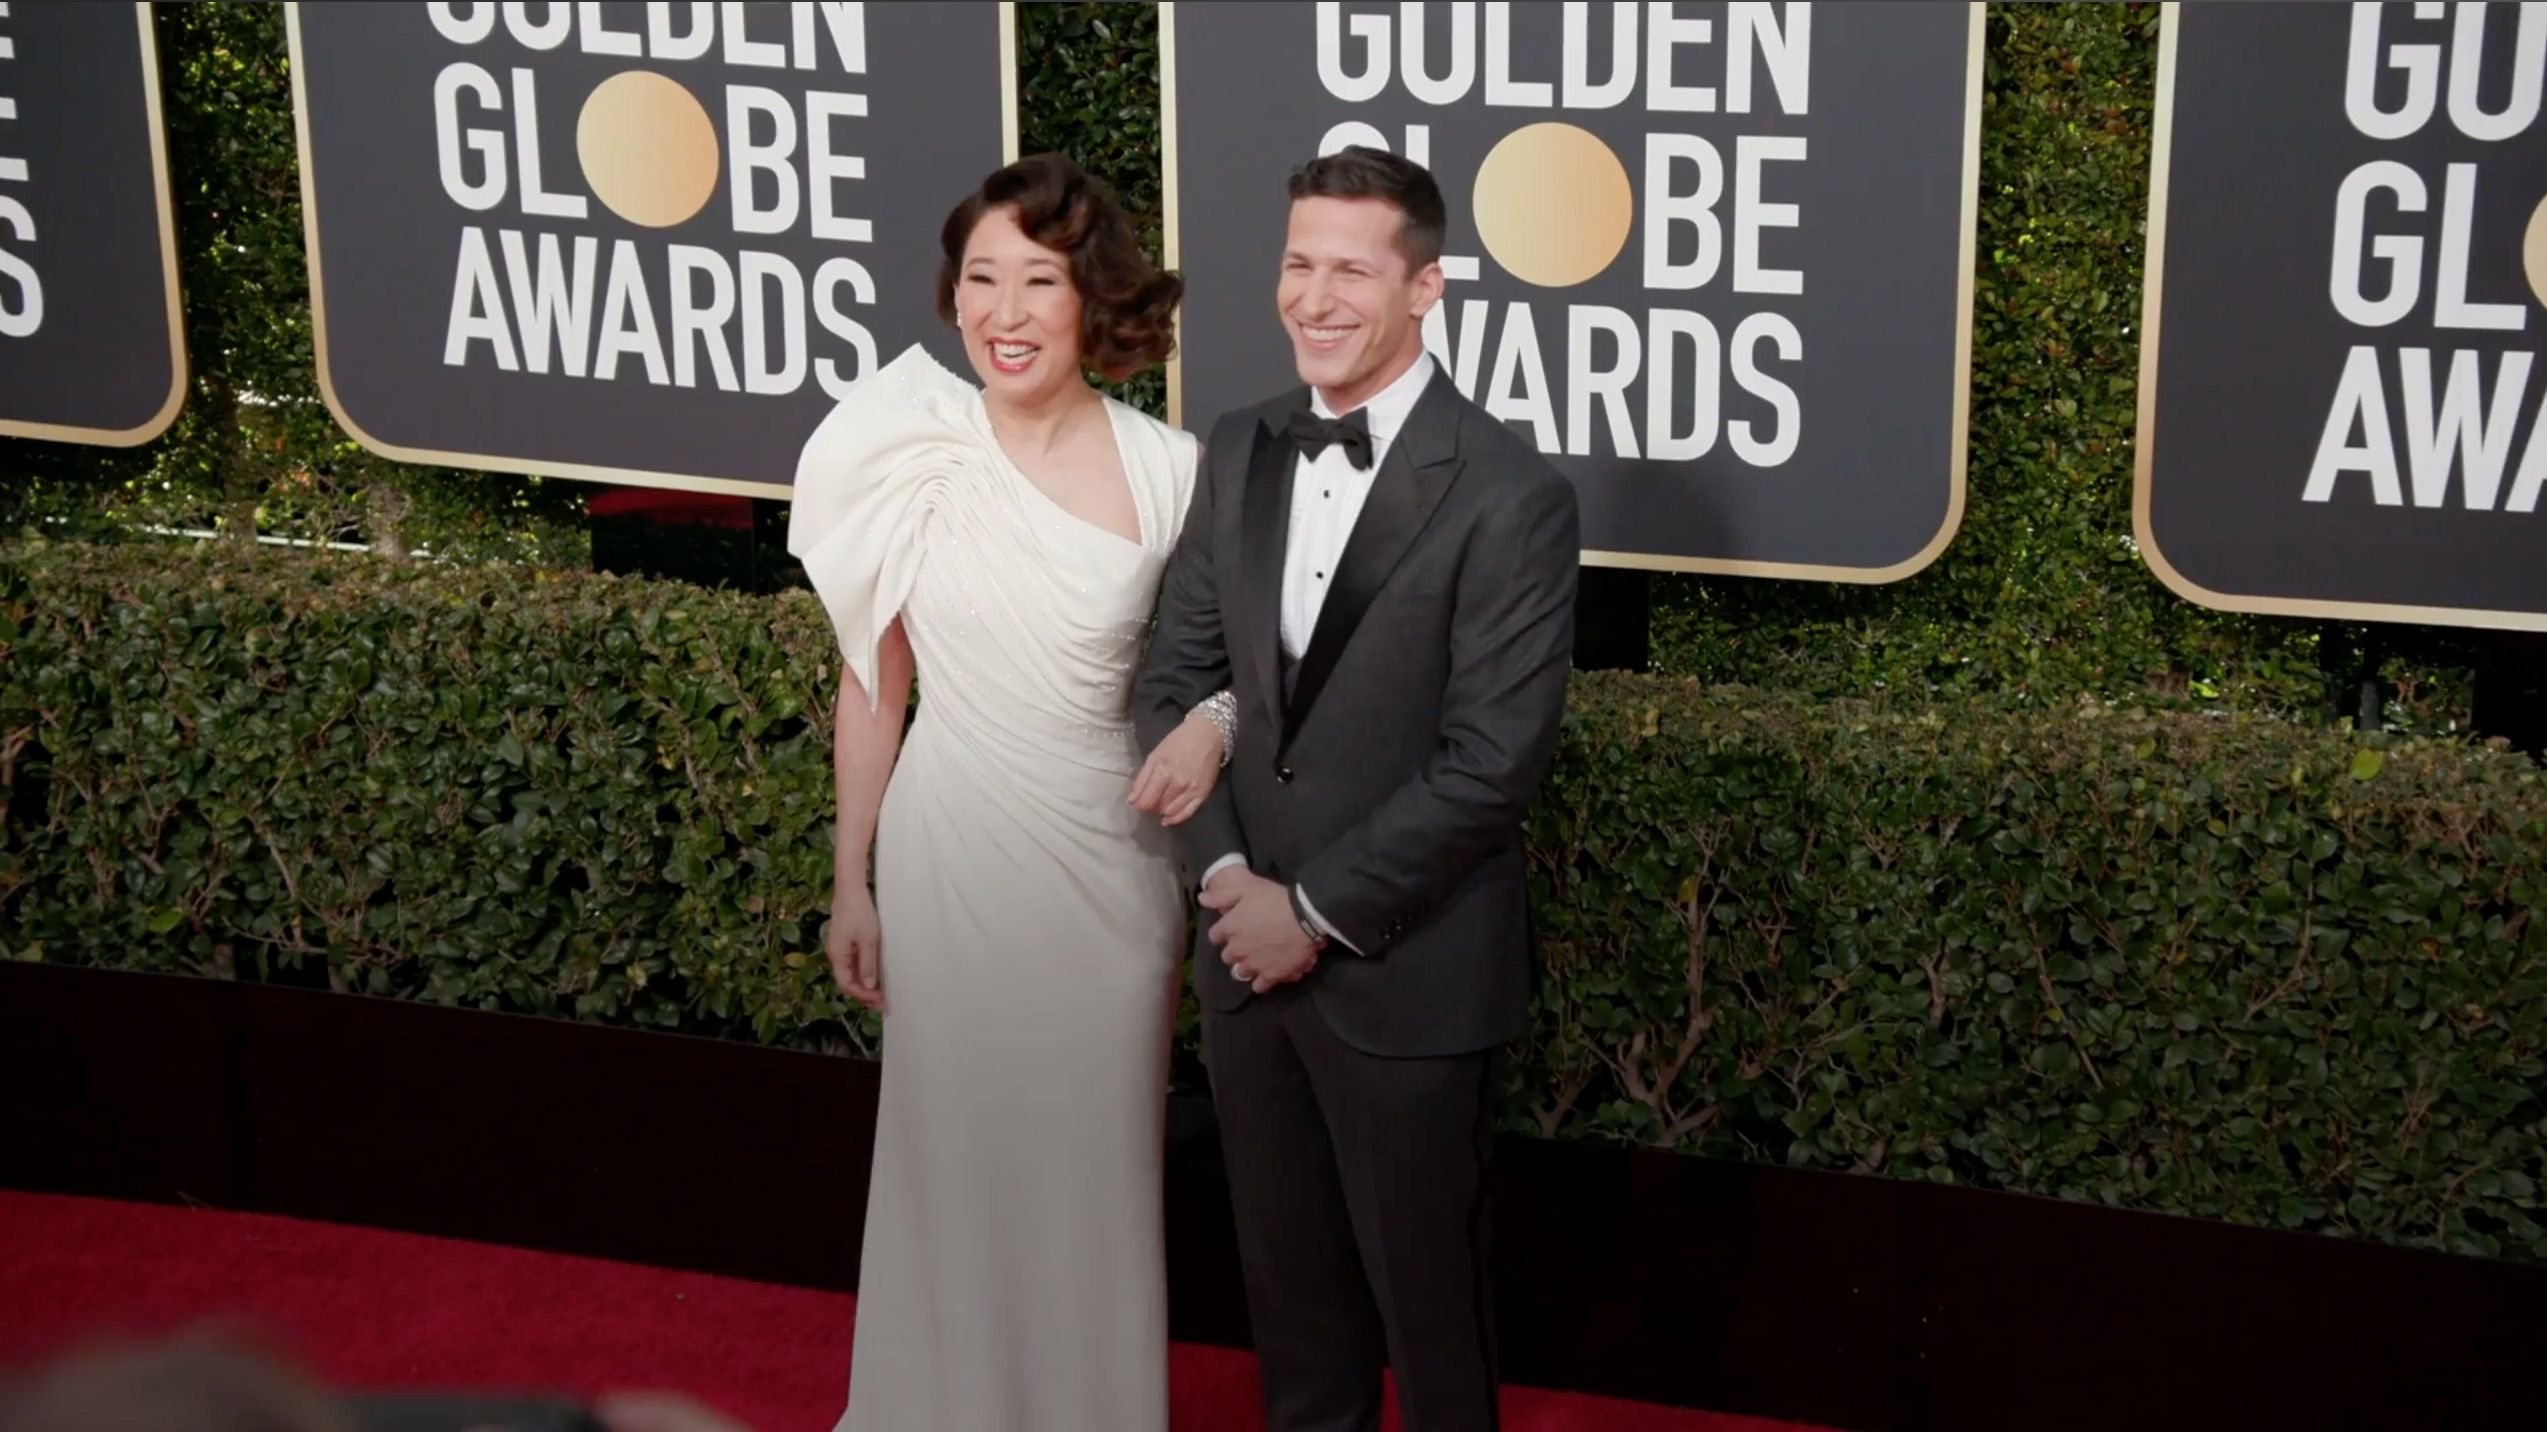 Golden Globes 2021: The Biggest Surprises and Snubs